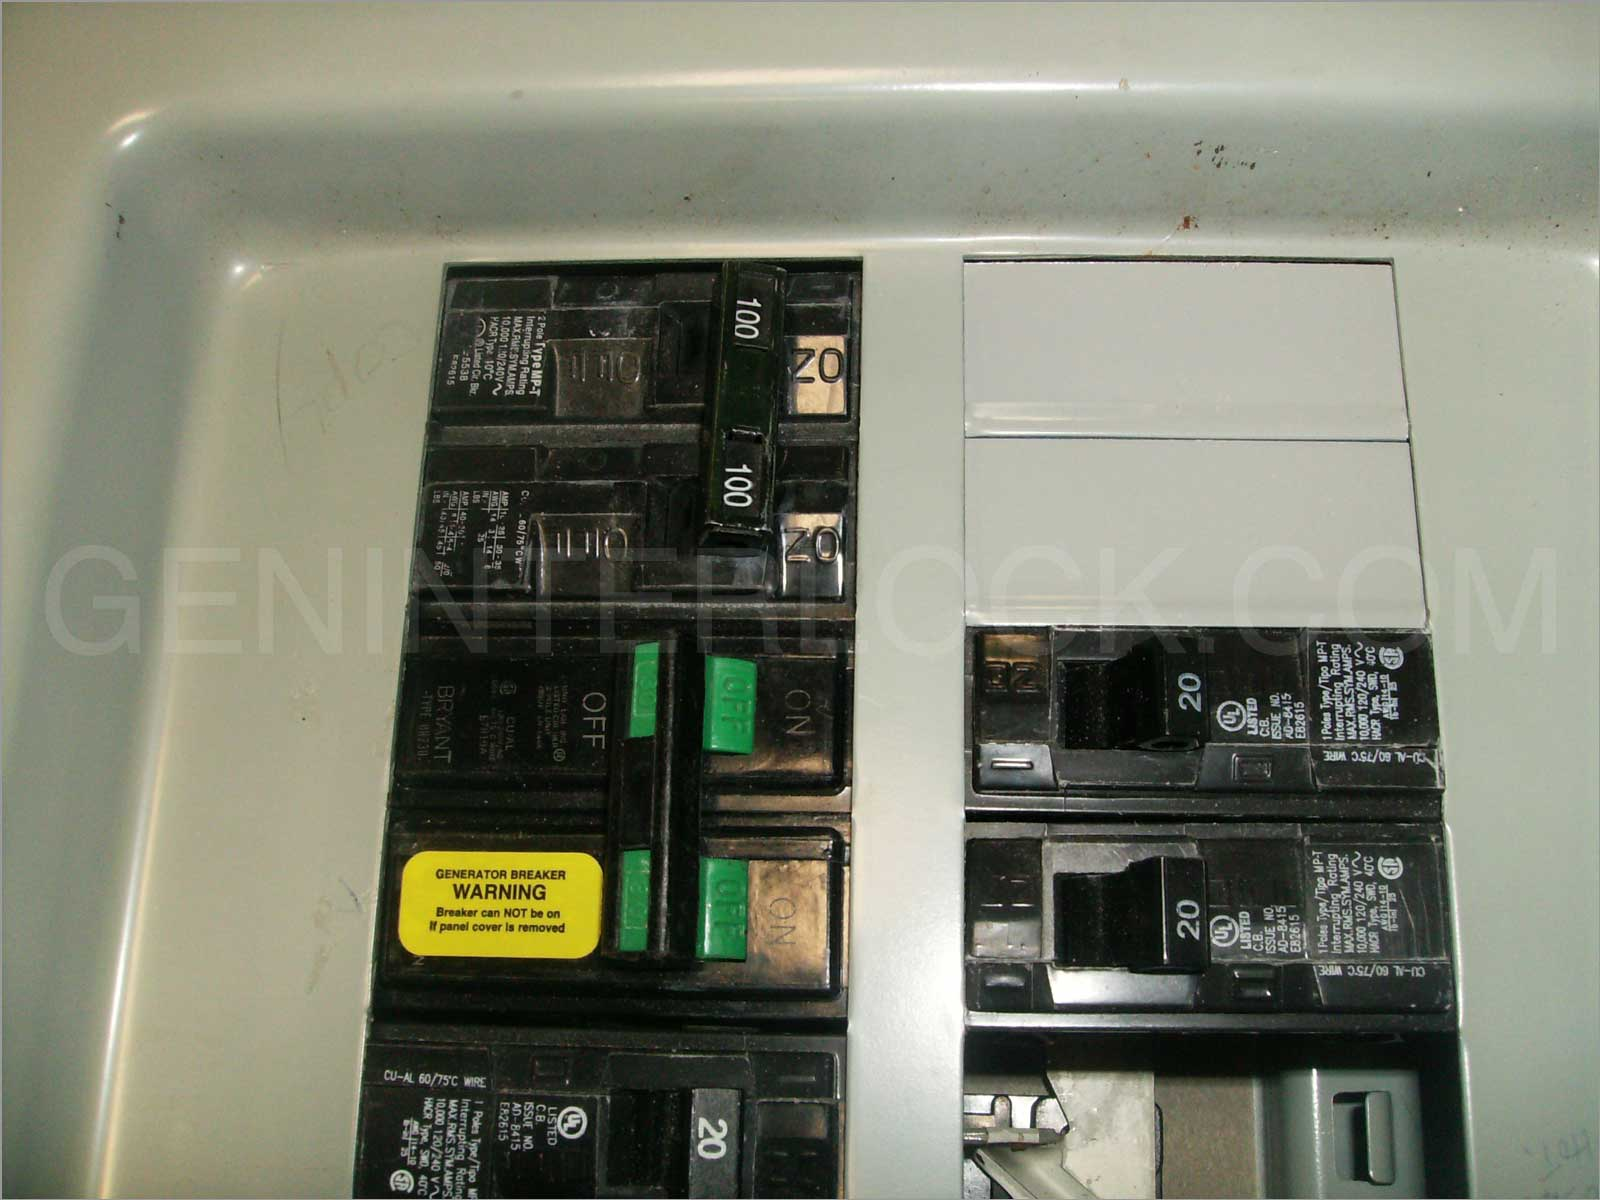 Oem Model Generator Interlock Kit Siemens Murray Ite